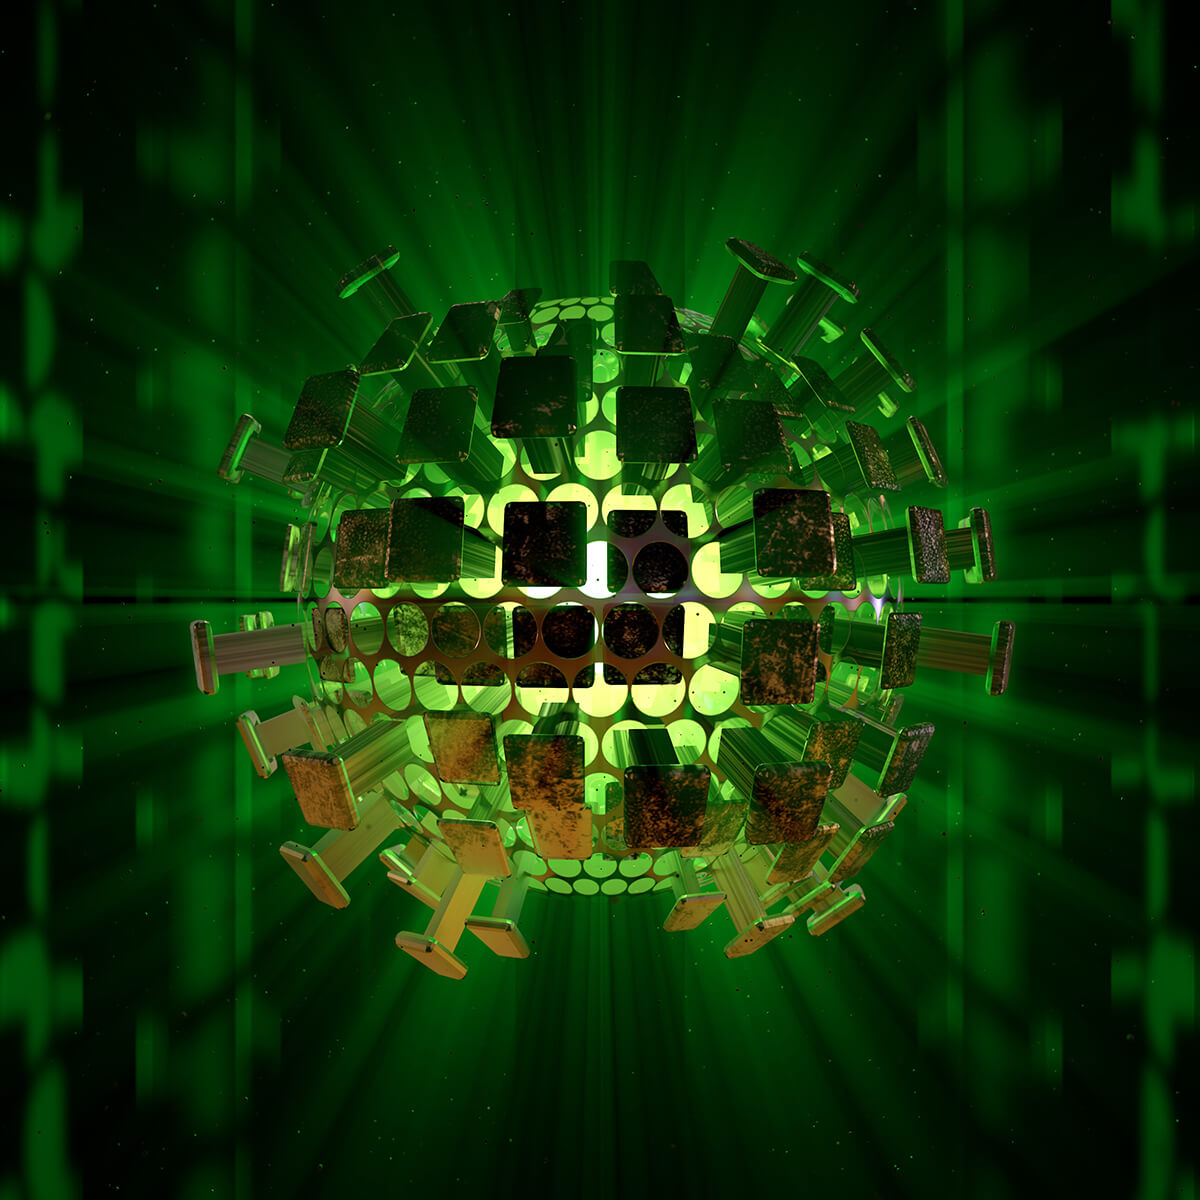 3D render of punched-out metal sphere emitting a strong green light